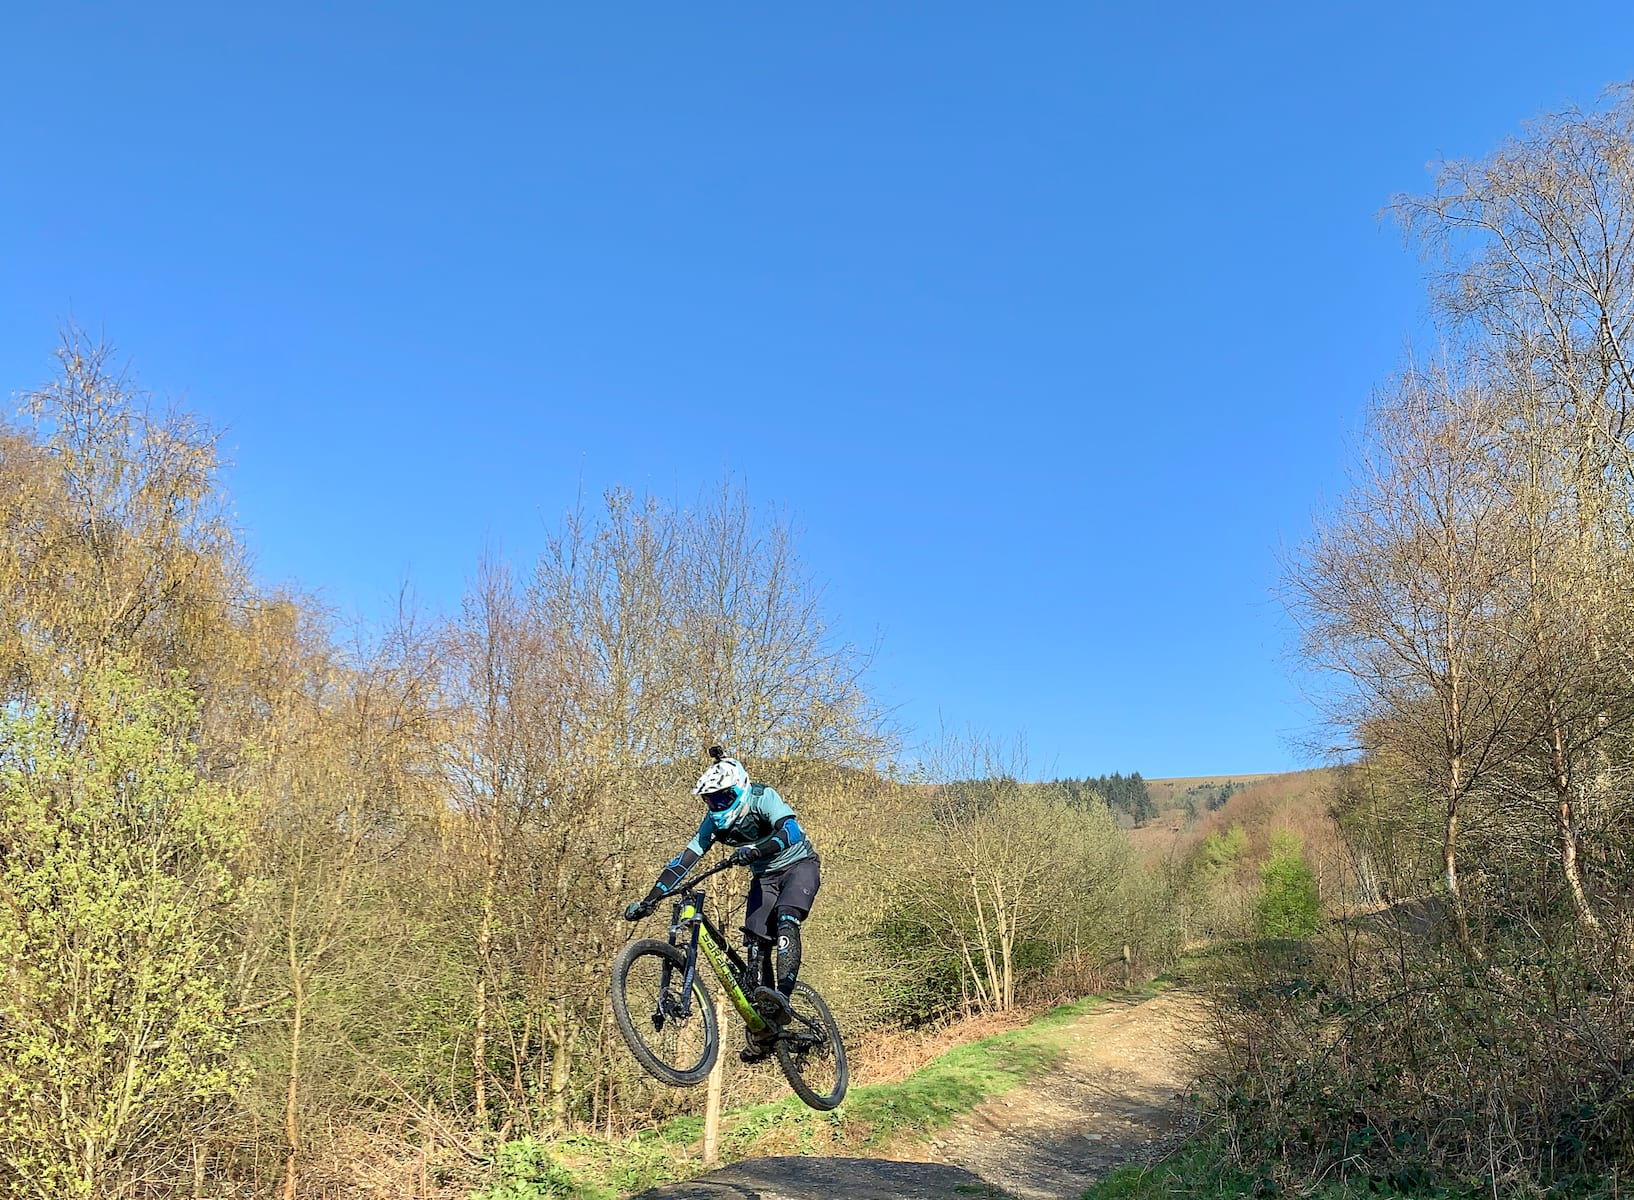 Road racer doing a jump